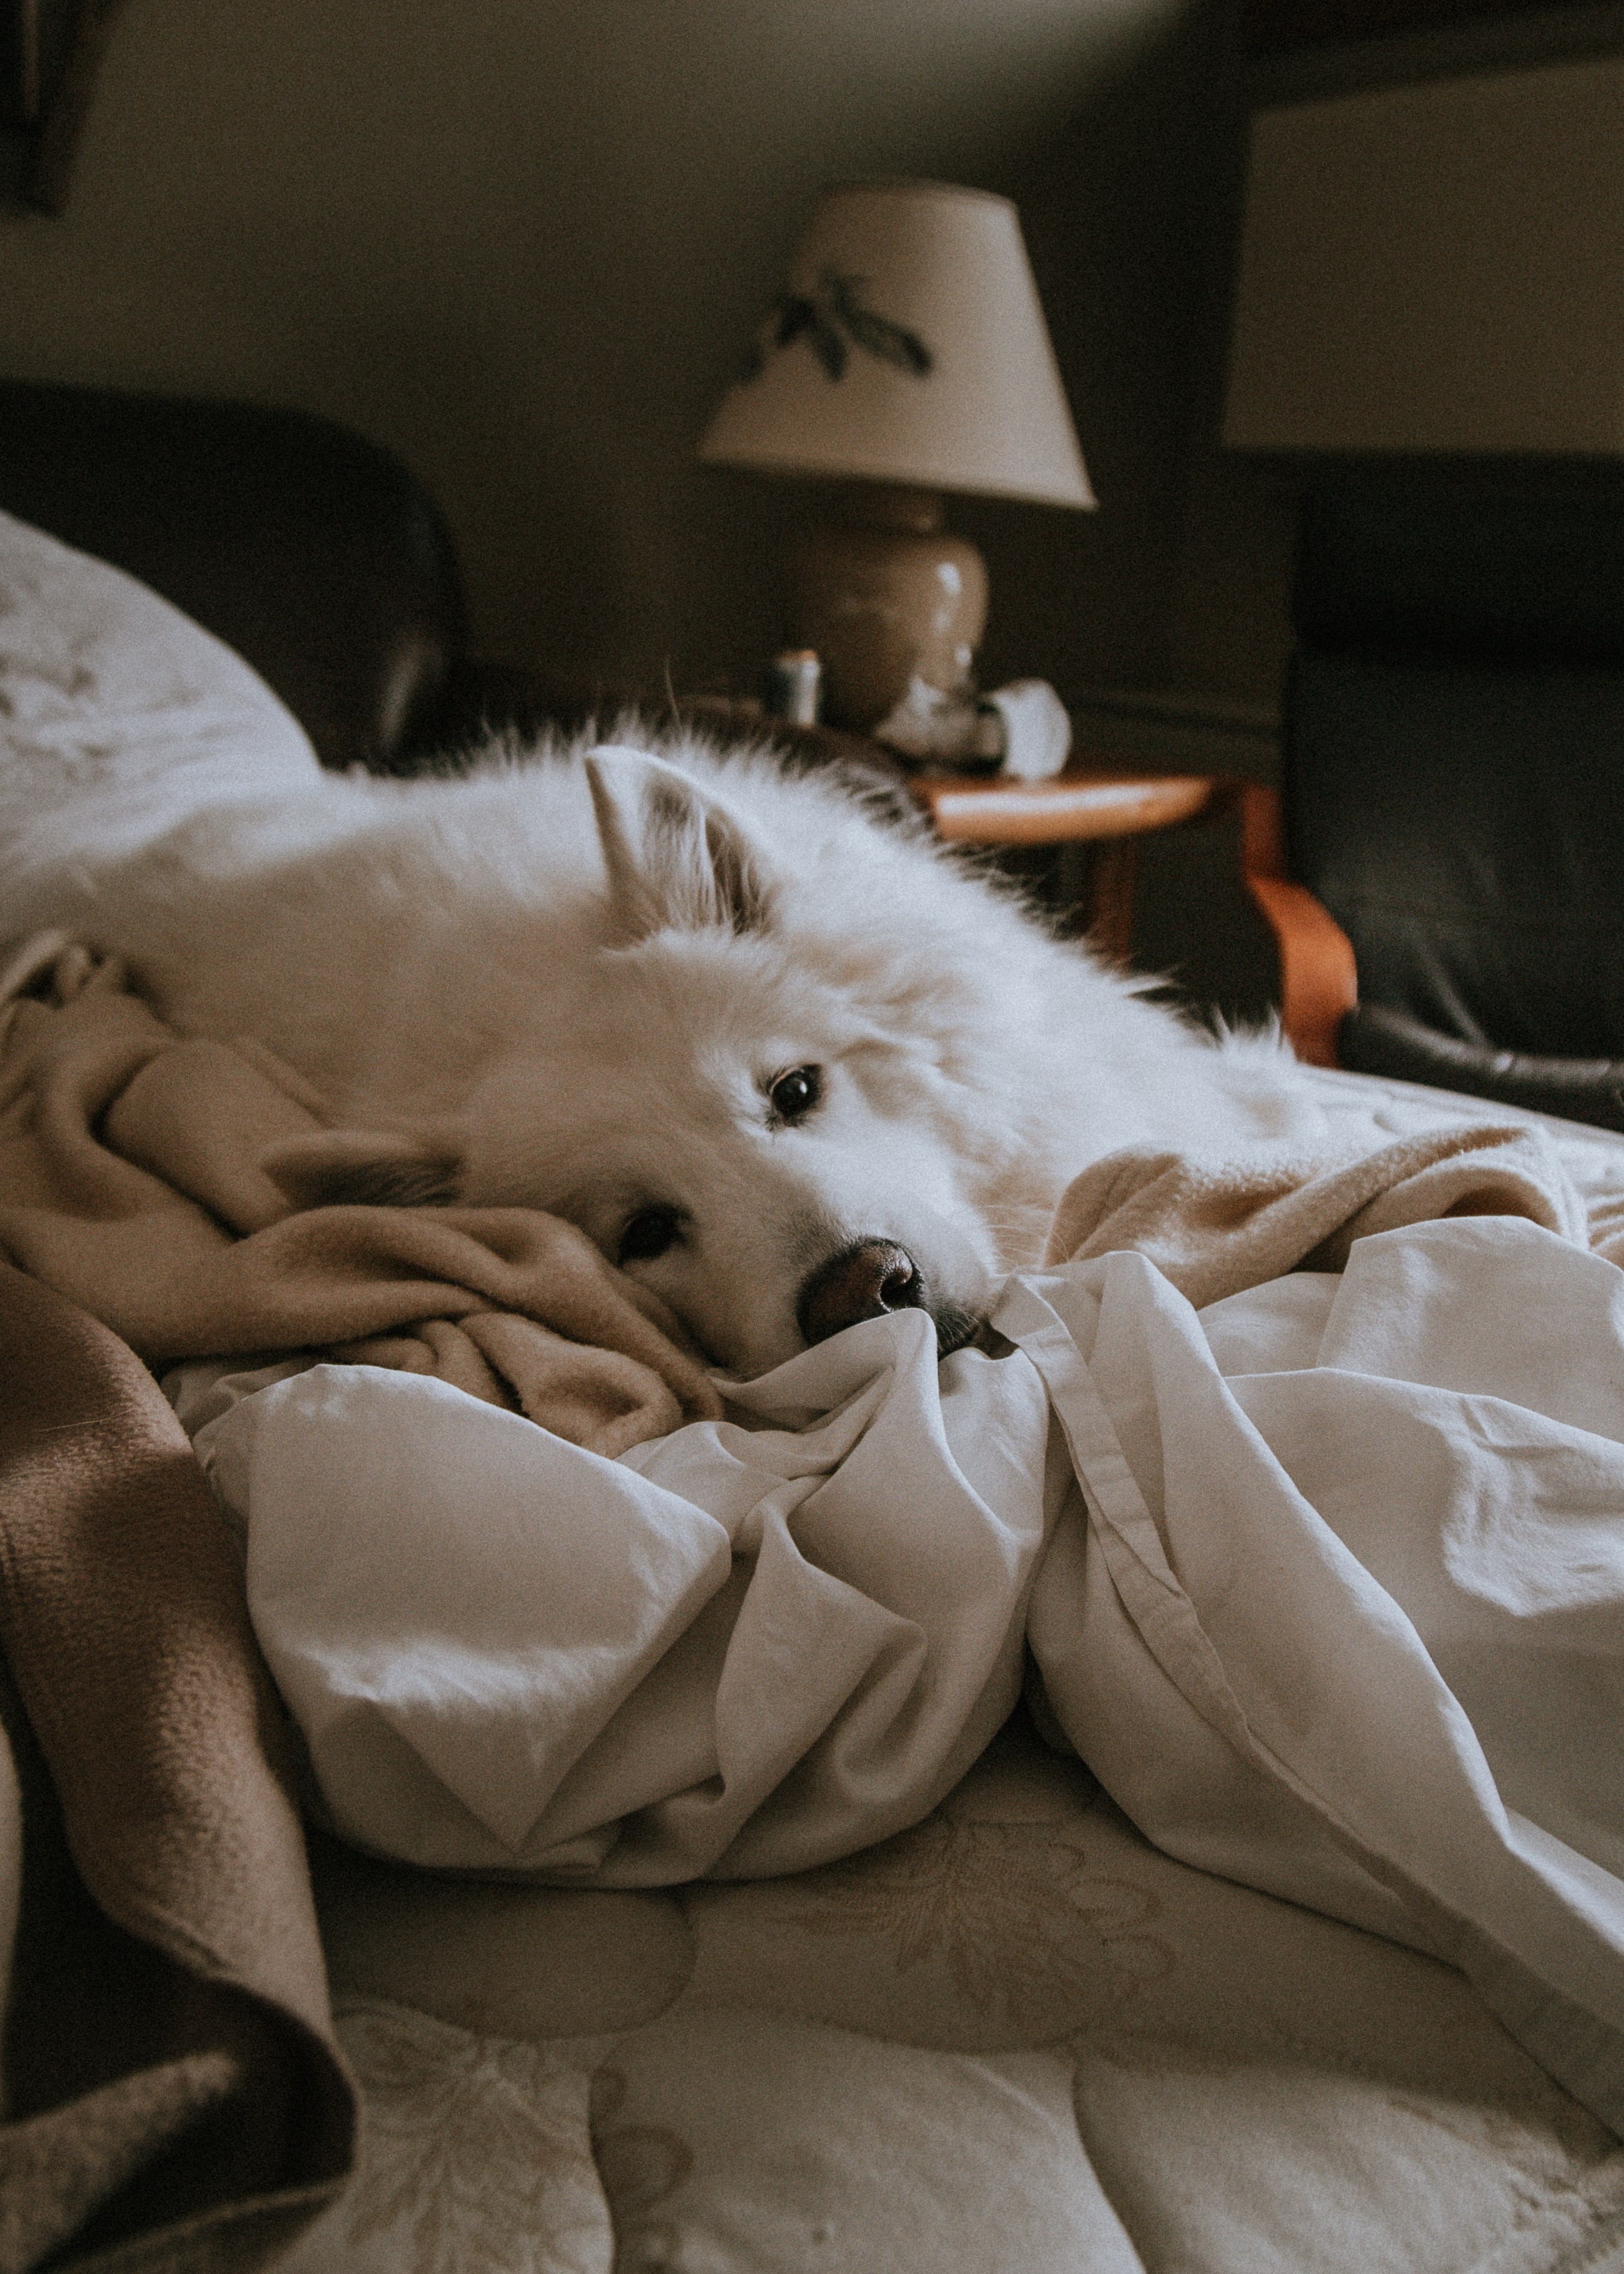 photo of medium white dog lying on white blanket